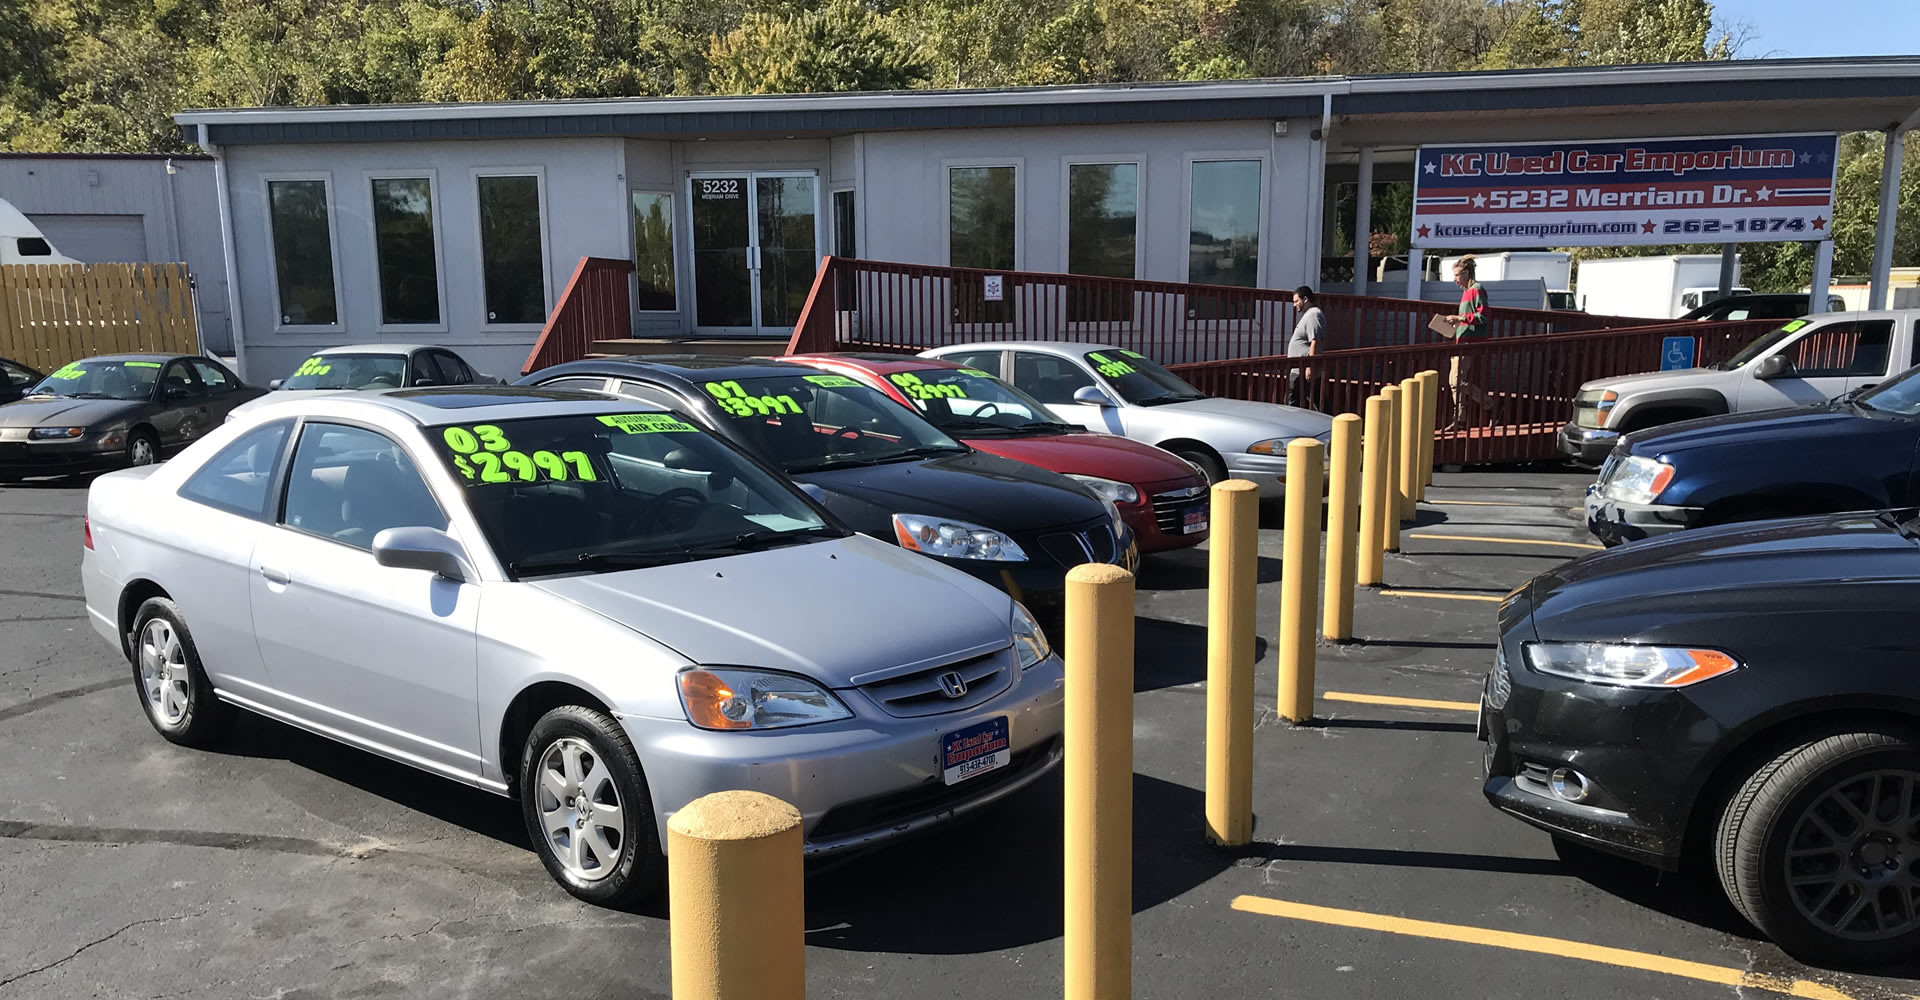 Used Cars St Louis New Used Cars St Louis Under 1000 New Kc Used Car Emporium Kansas City